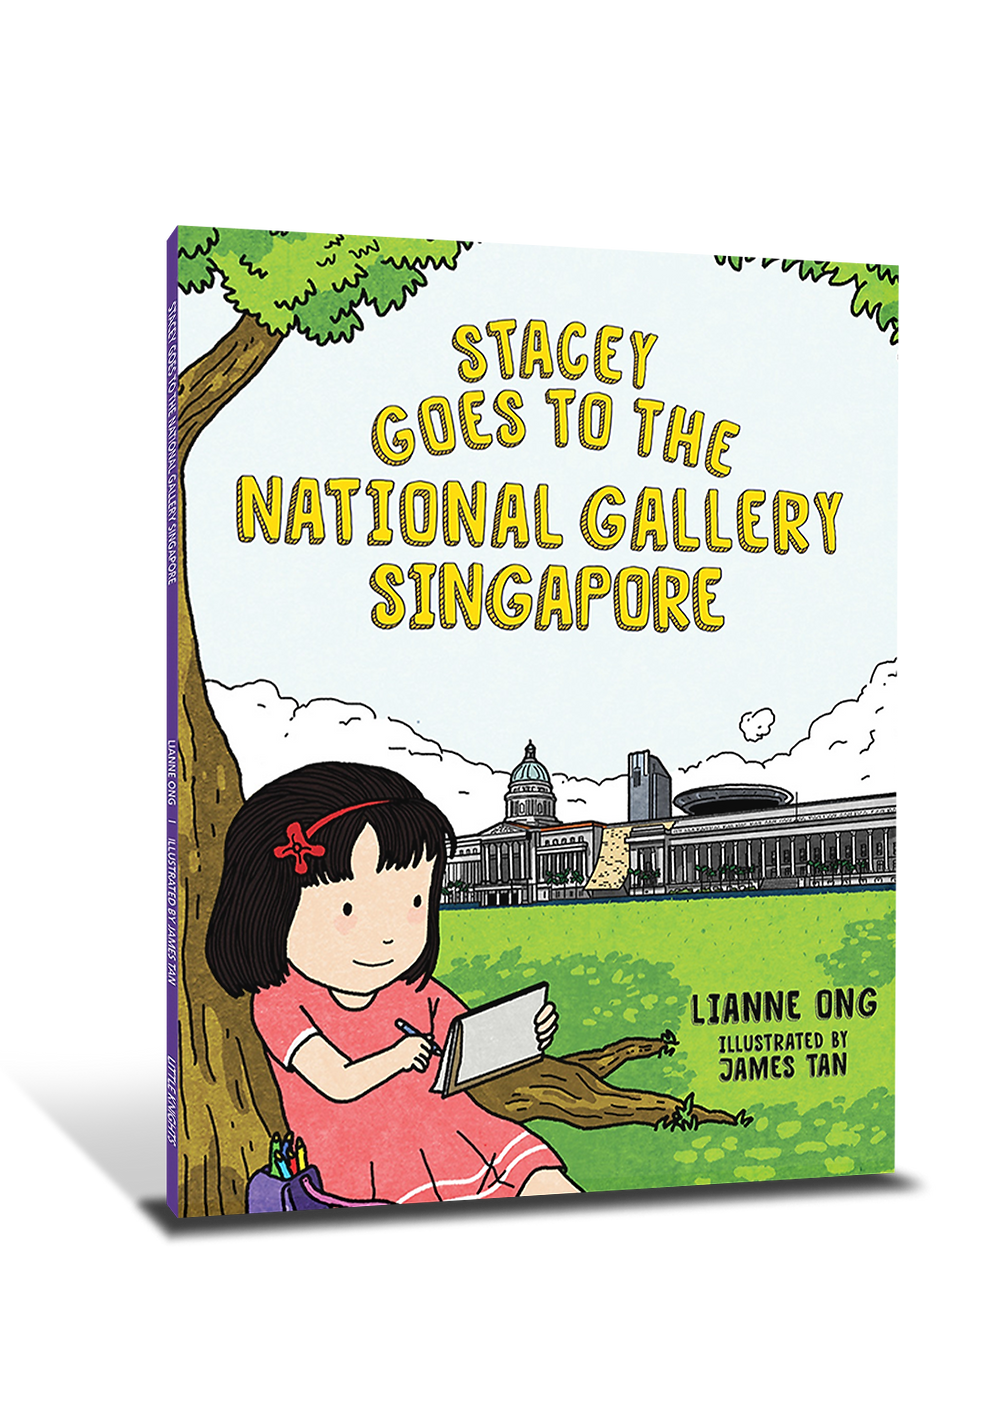 Stacey Goes to the National Gallery Singapore by Lianne Ong James Tan